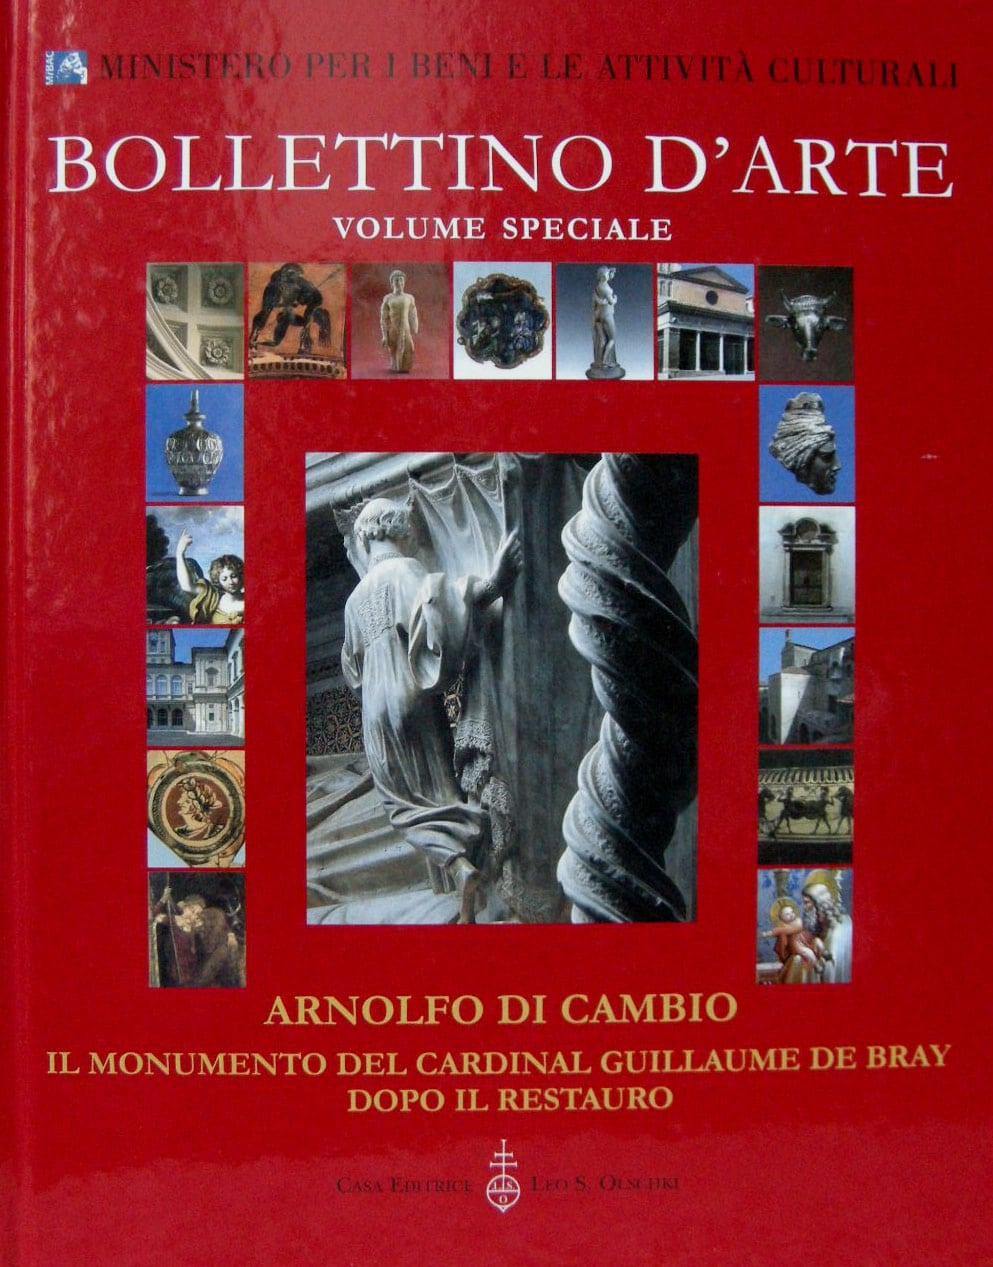 https://cbccoop.it/app/uploads/2017/06/COP-Bollettino-darte-Arnolfo-di-Cambio.jpg